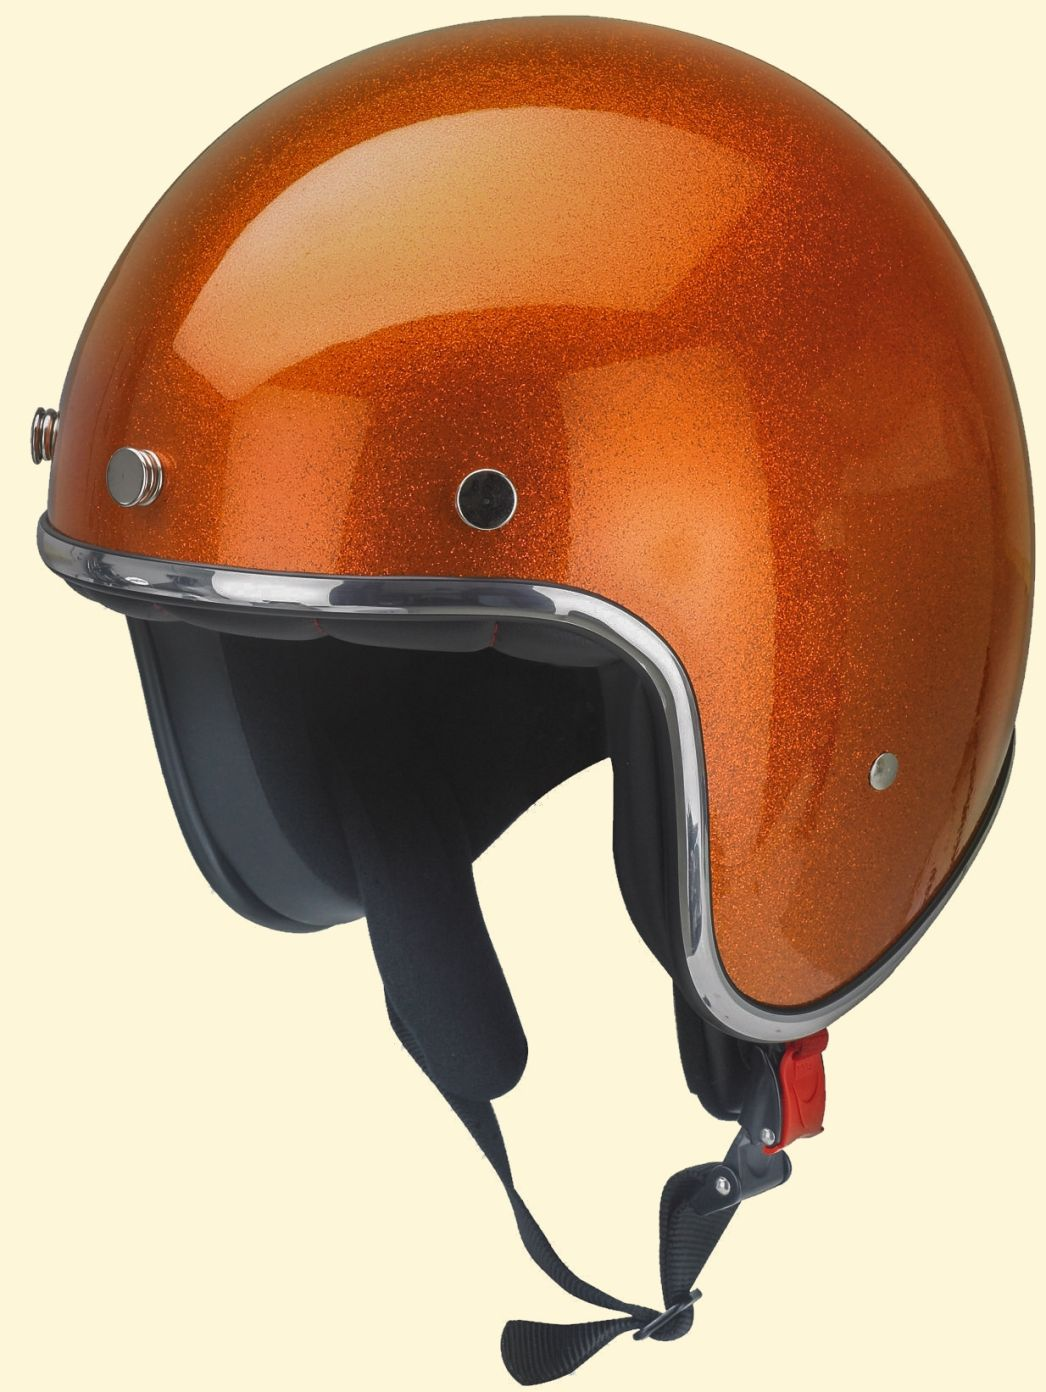 Racing Jethelm CLASSIC RB-765 VENOM ORANGE